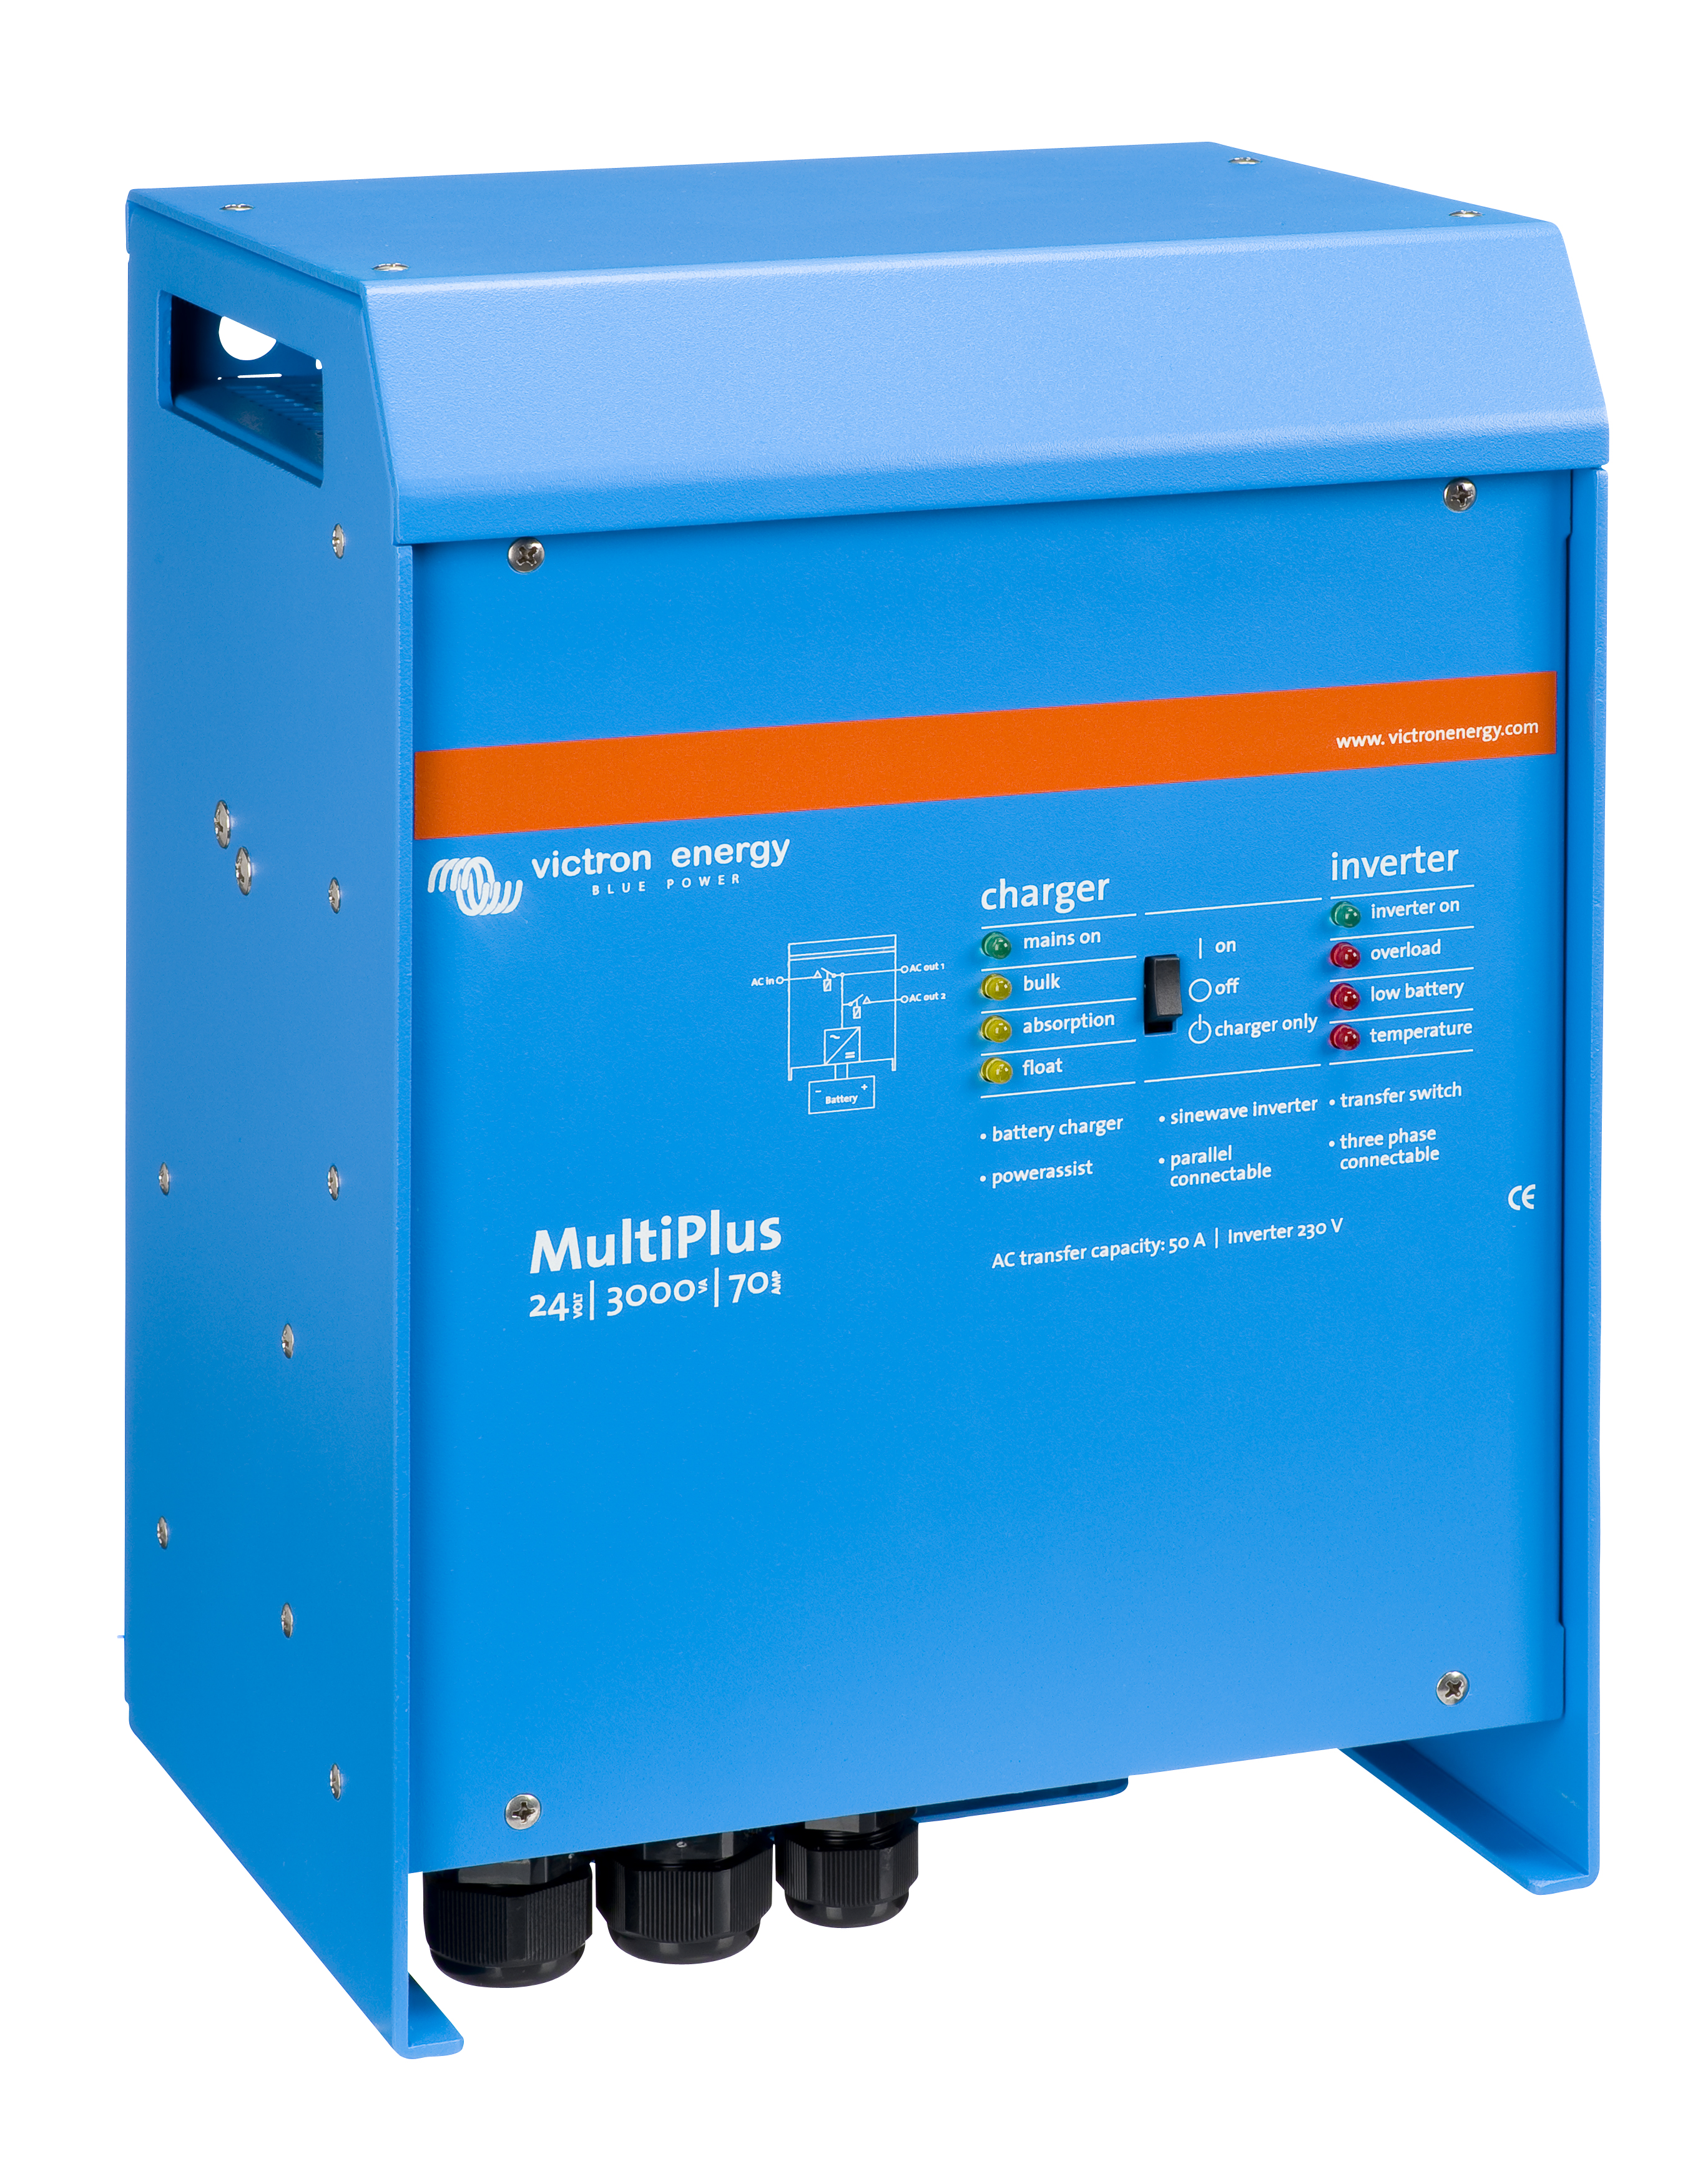 Multiplus Victron Energy